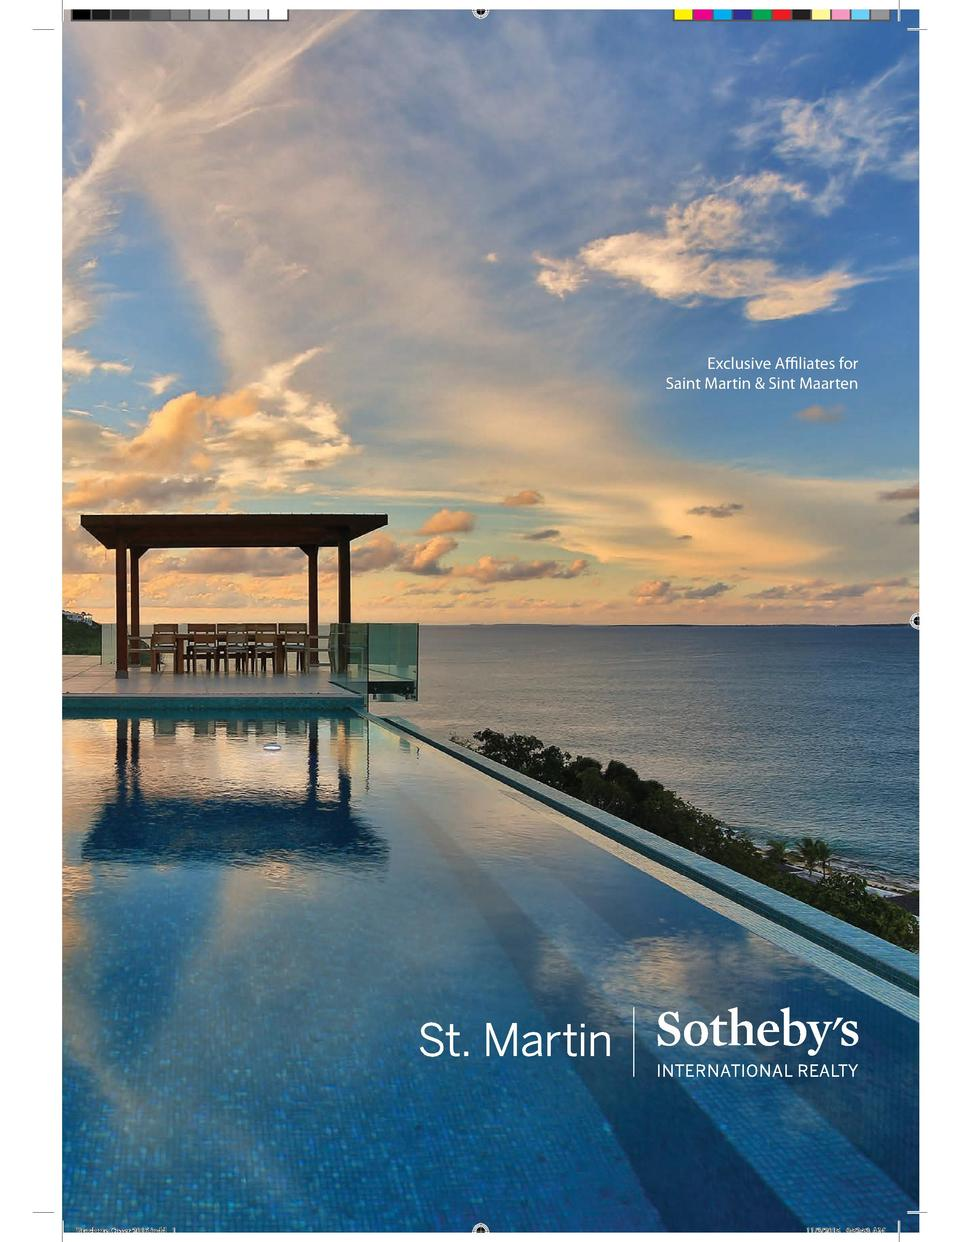 Exclusive Affiliates for Saint Martin   Sint Maarten  Brochure Cover 2016.indd 1  11 3 2015 9 52 53 AM